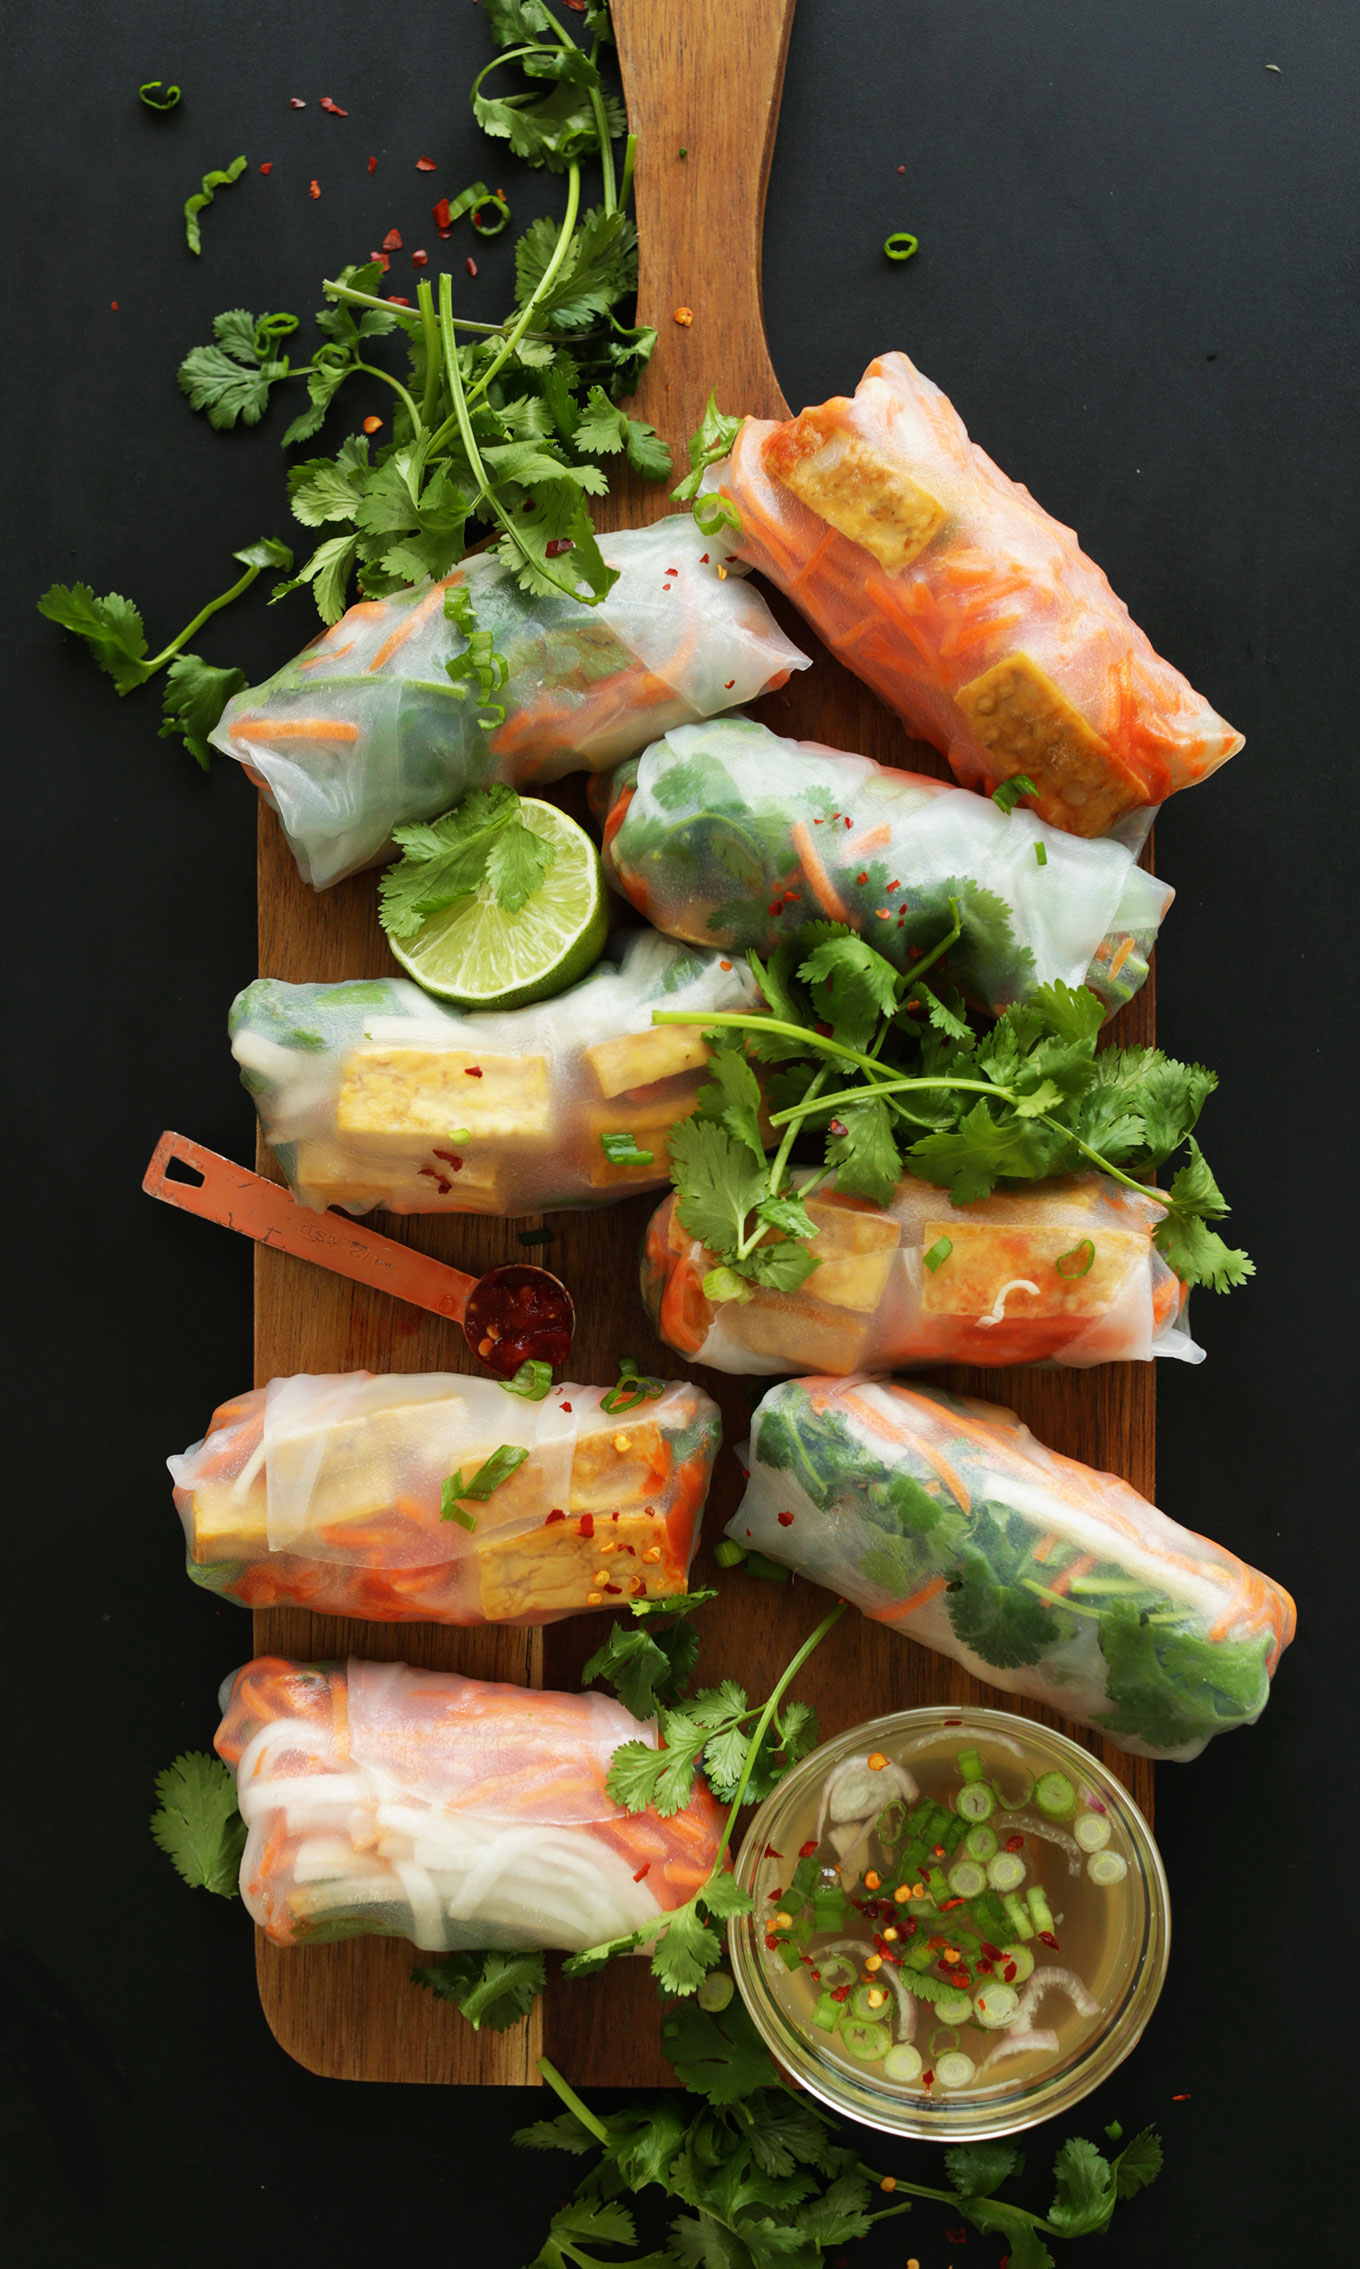 Wood cutting board with fresh and satisfying Bahn Mi Spring Rolls